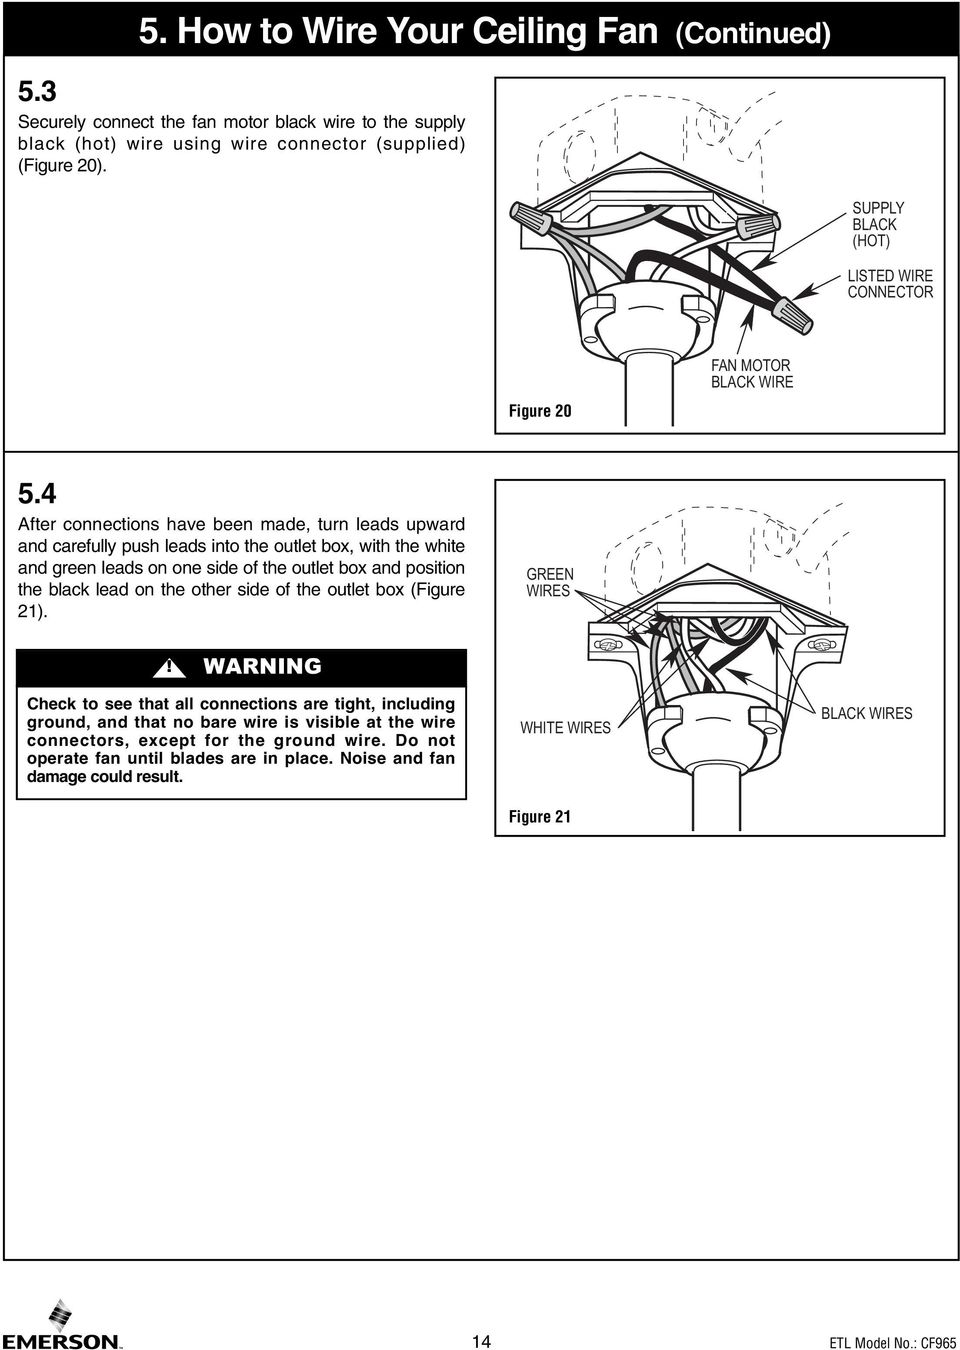 Read And Save These Instructions Portland 54 Ceiling Fan Owners Outlet Wiring Black White Wires Figure 21 14 4 After Connections Have Been Made Turn Leads Upward Carefully Push Into The